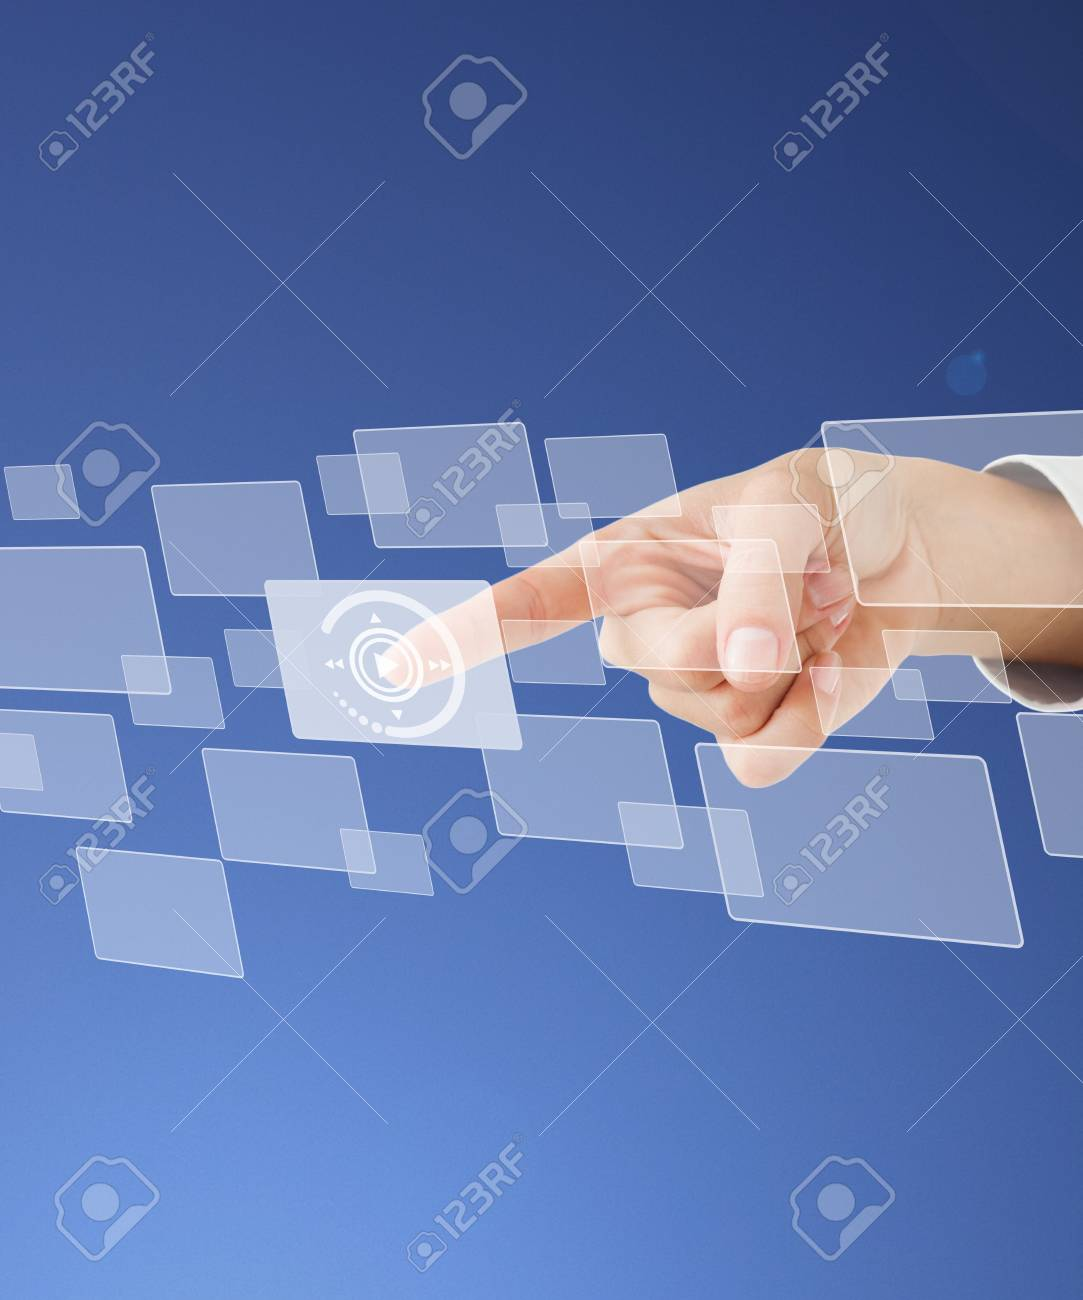 Finger pointing at play button on square from digital menu Stock Photo - 15561053